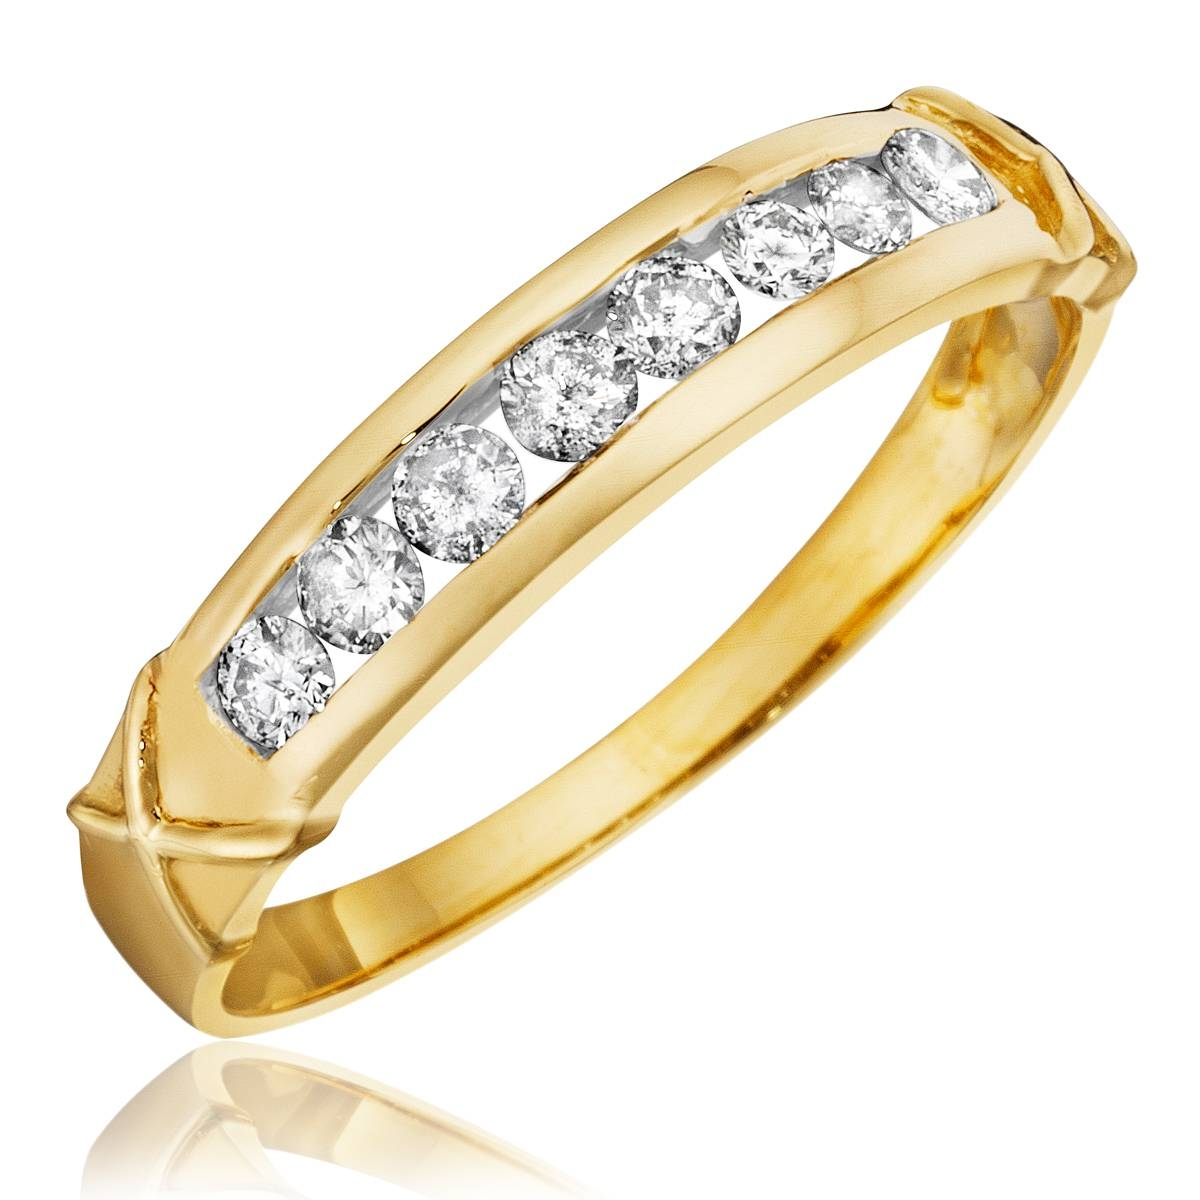 1 Carat Diamond Trio Wedding Ring Set 14K Yellow Gold With Regard To Wedding Bands With Yellow Diamonds (View 2 of 15)